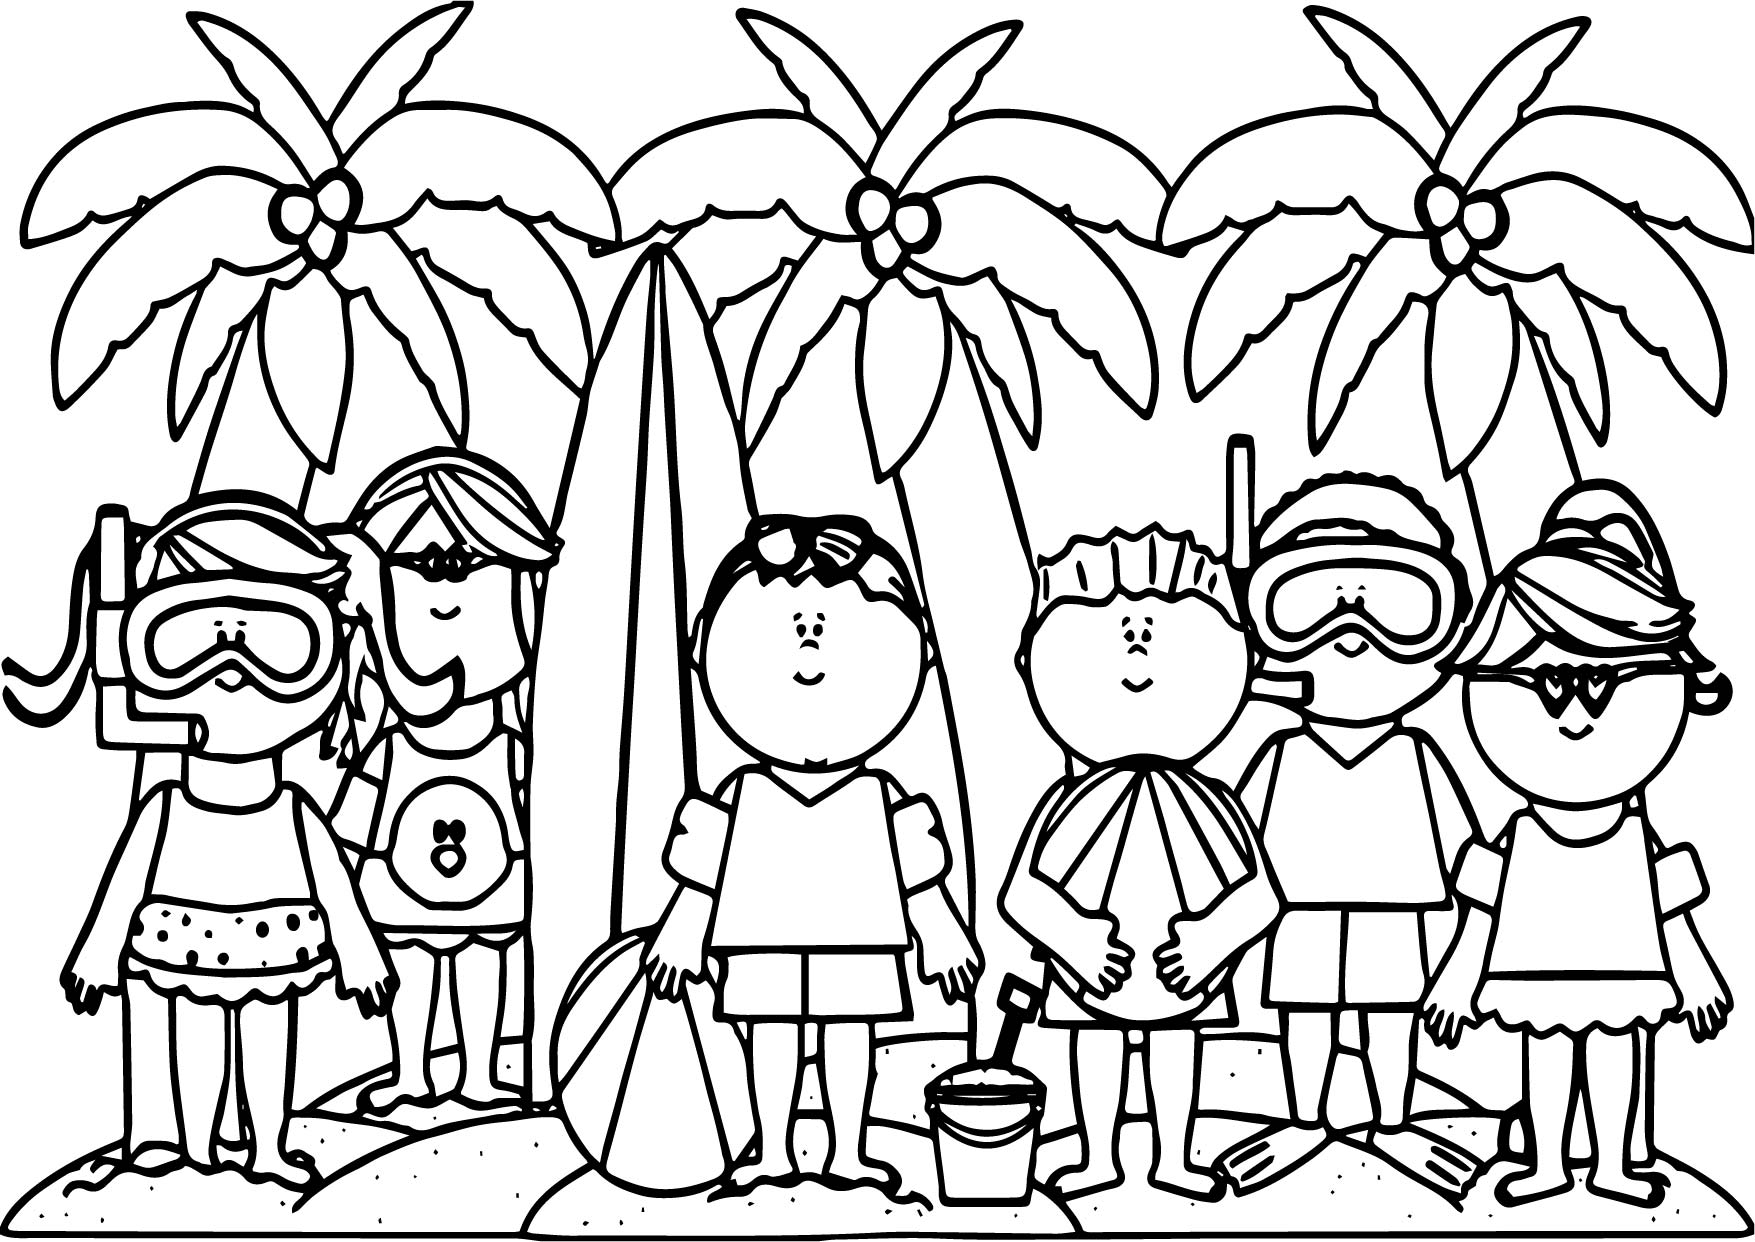 Coloring summer activities - Kids Summer Activities Activity Coloring Page